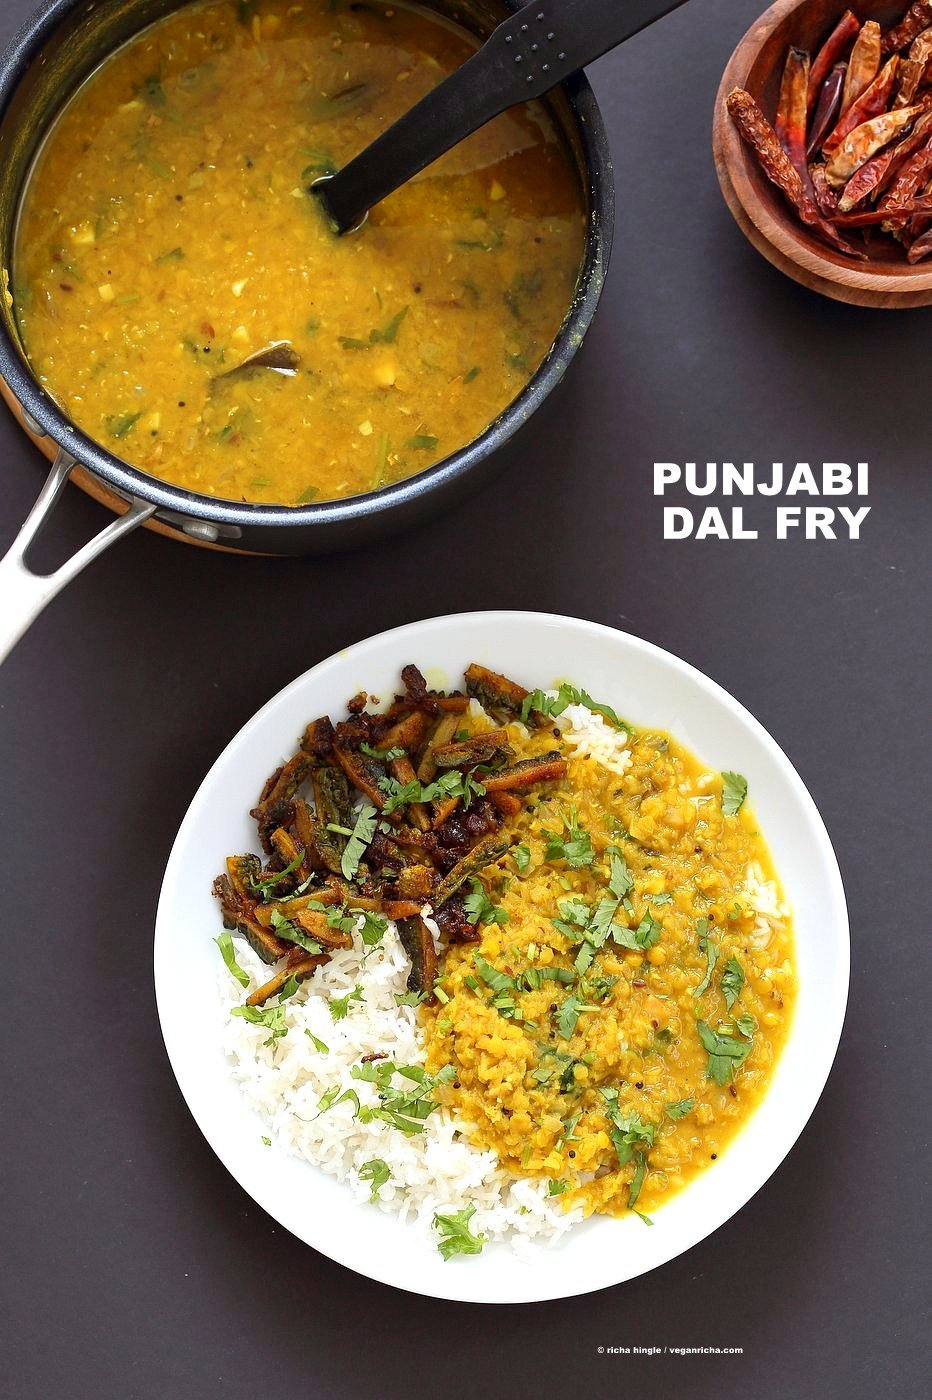 Punjabi dal fry recipe vegan richa punjabi dal fry recipe easy dal fry with whole spices and garam masala lentil forumfinder